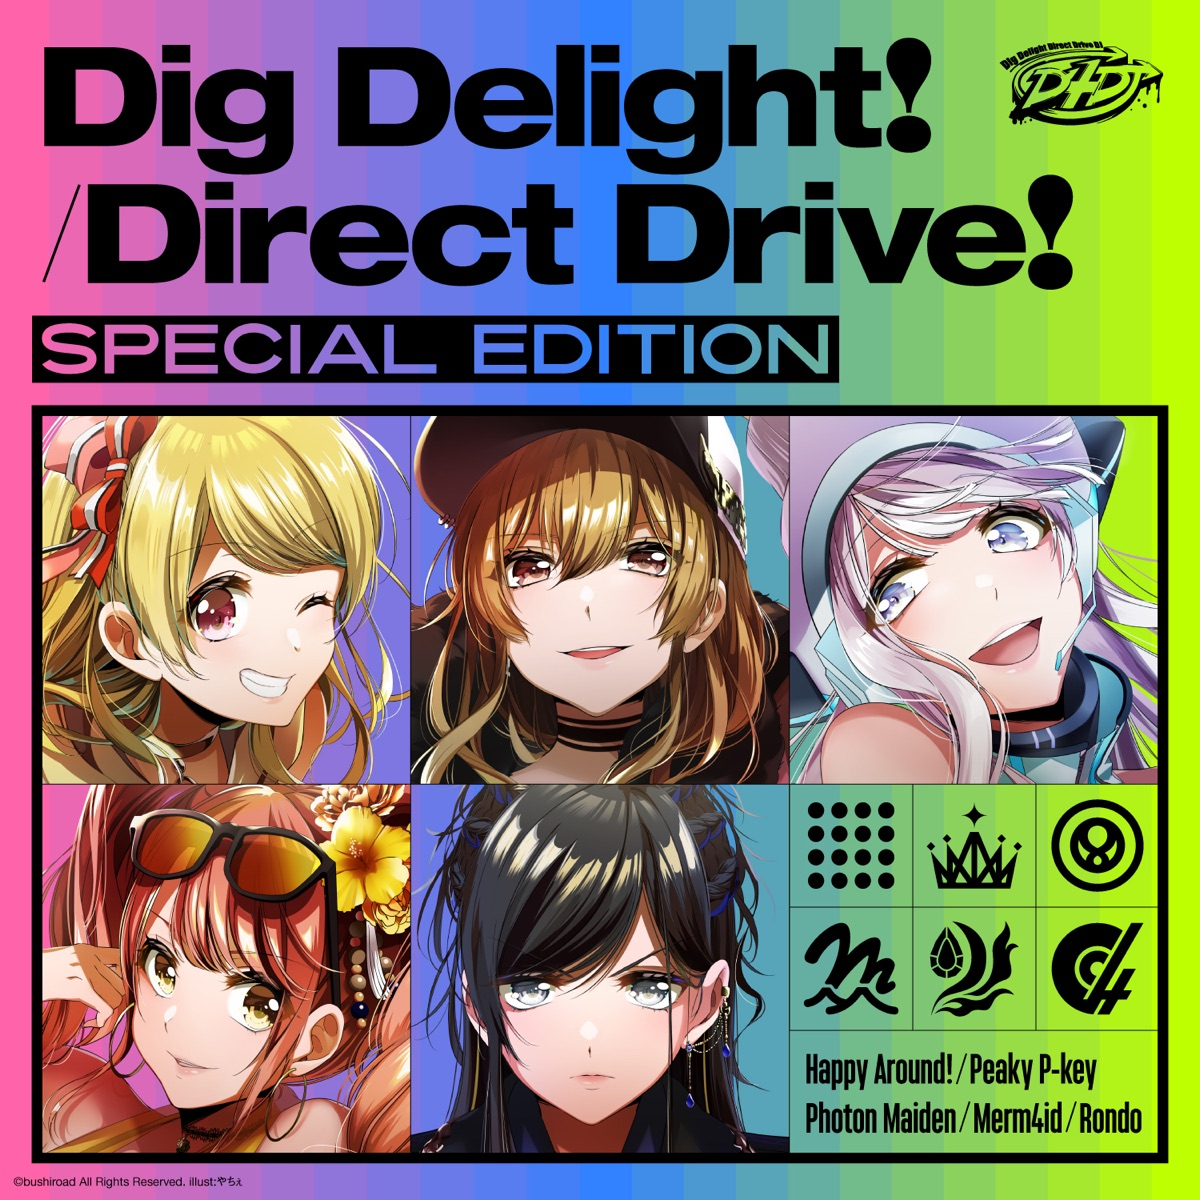 『Happy Around! - Direct Drive! 歌詞』収録の『Dig Delight!/Direct Drive! Special Edition』ジャケット